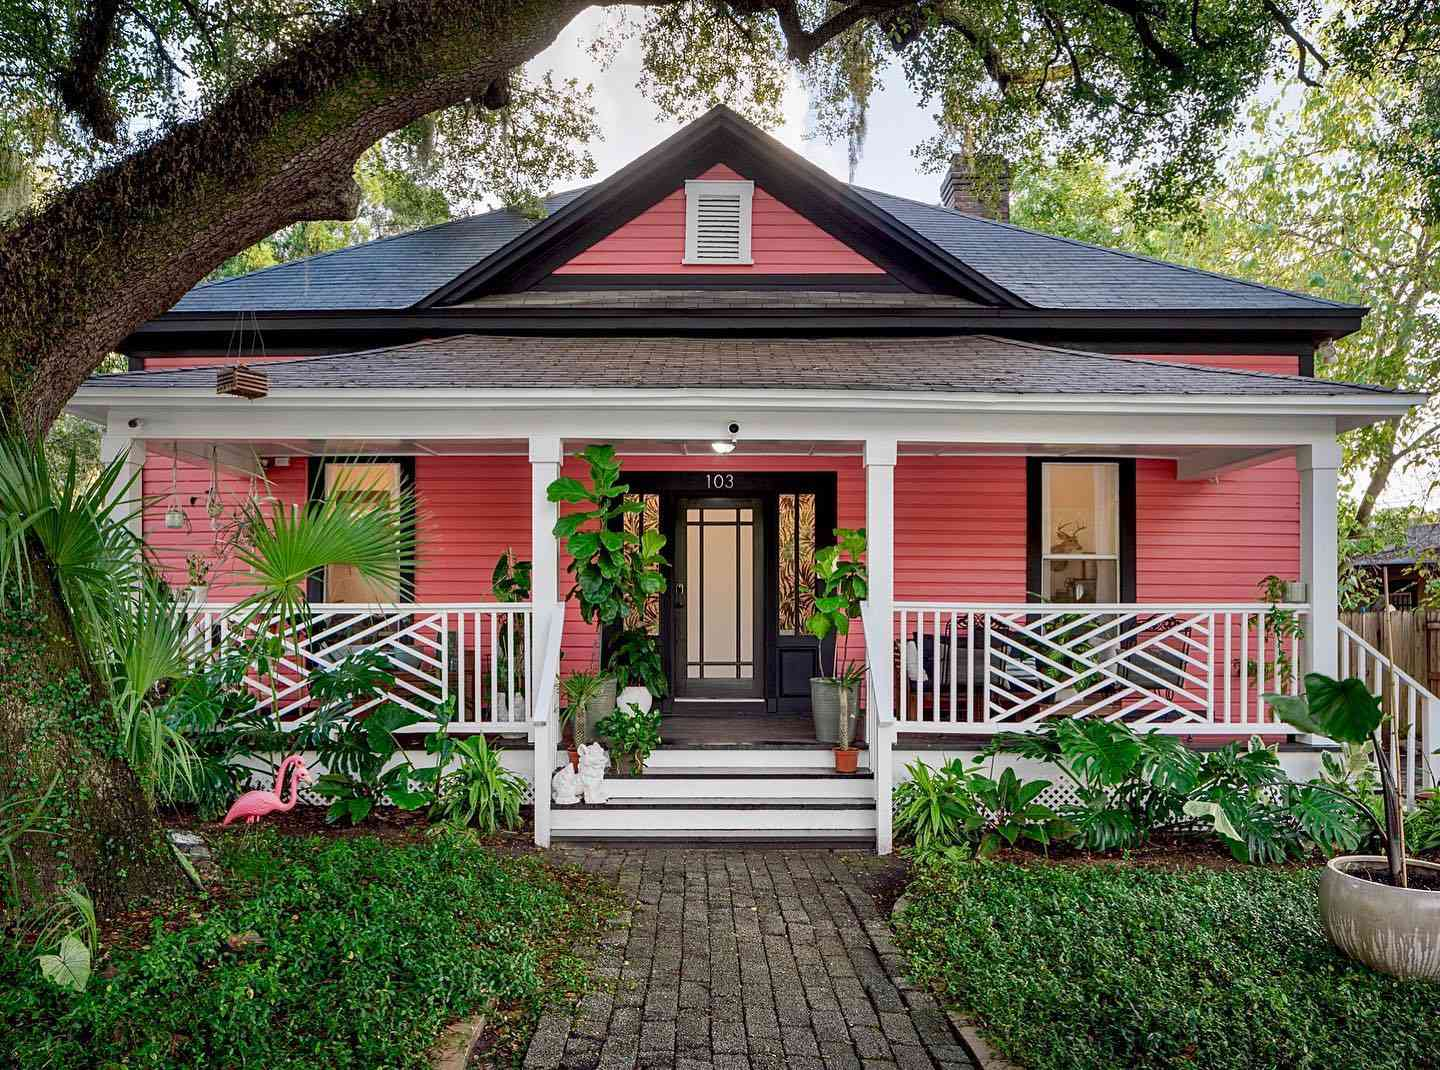 House with coral paint